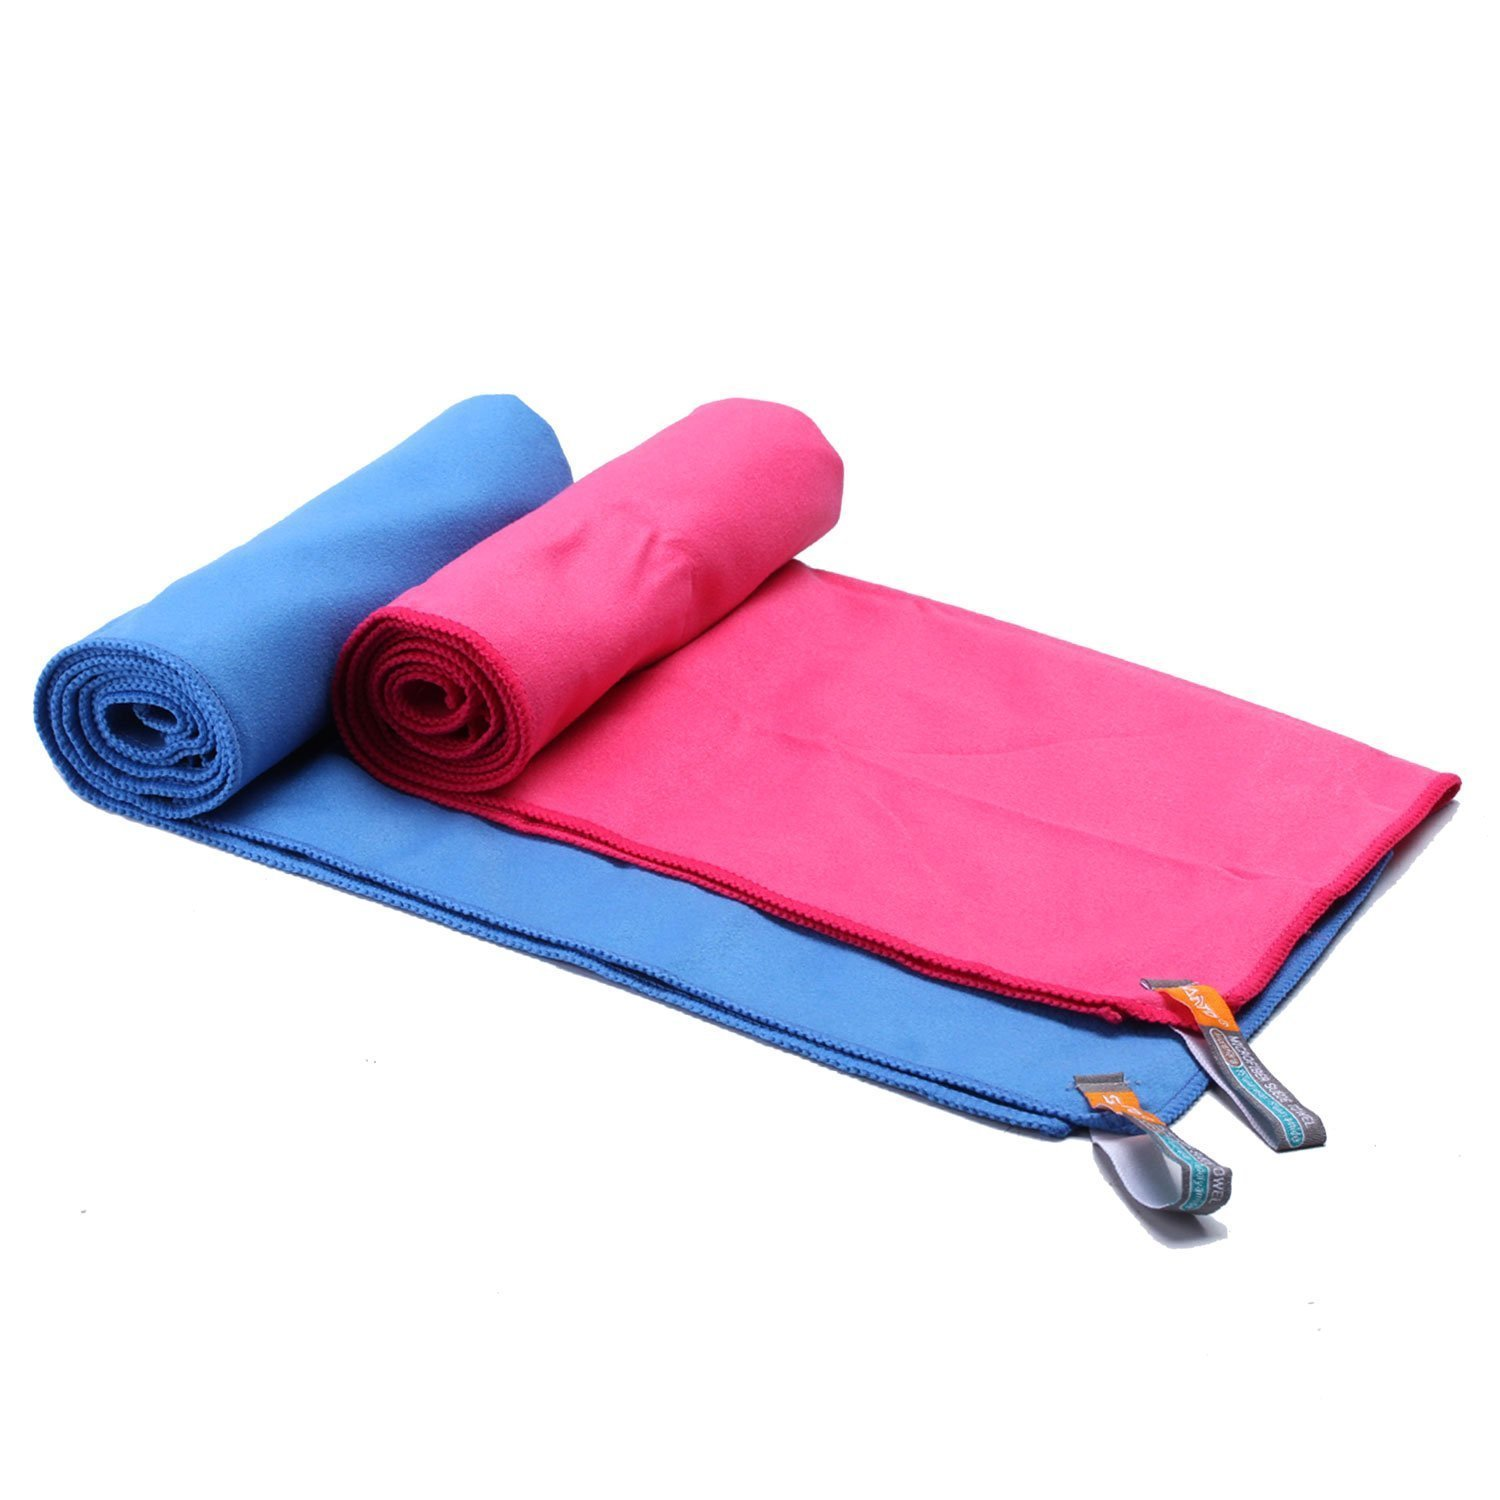 100% Microfiber suede towel for sport towel drying towel Featured Image